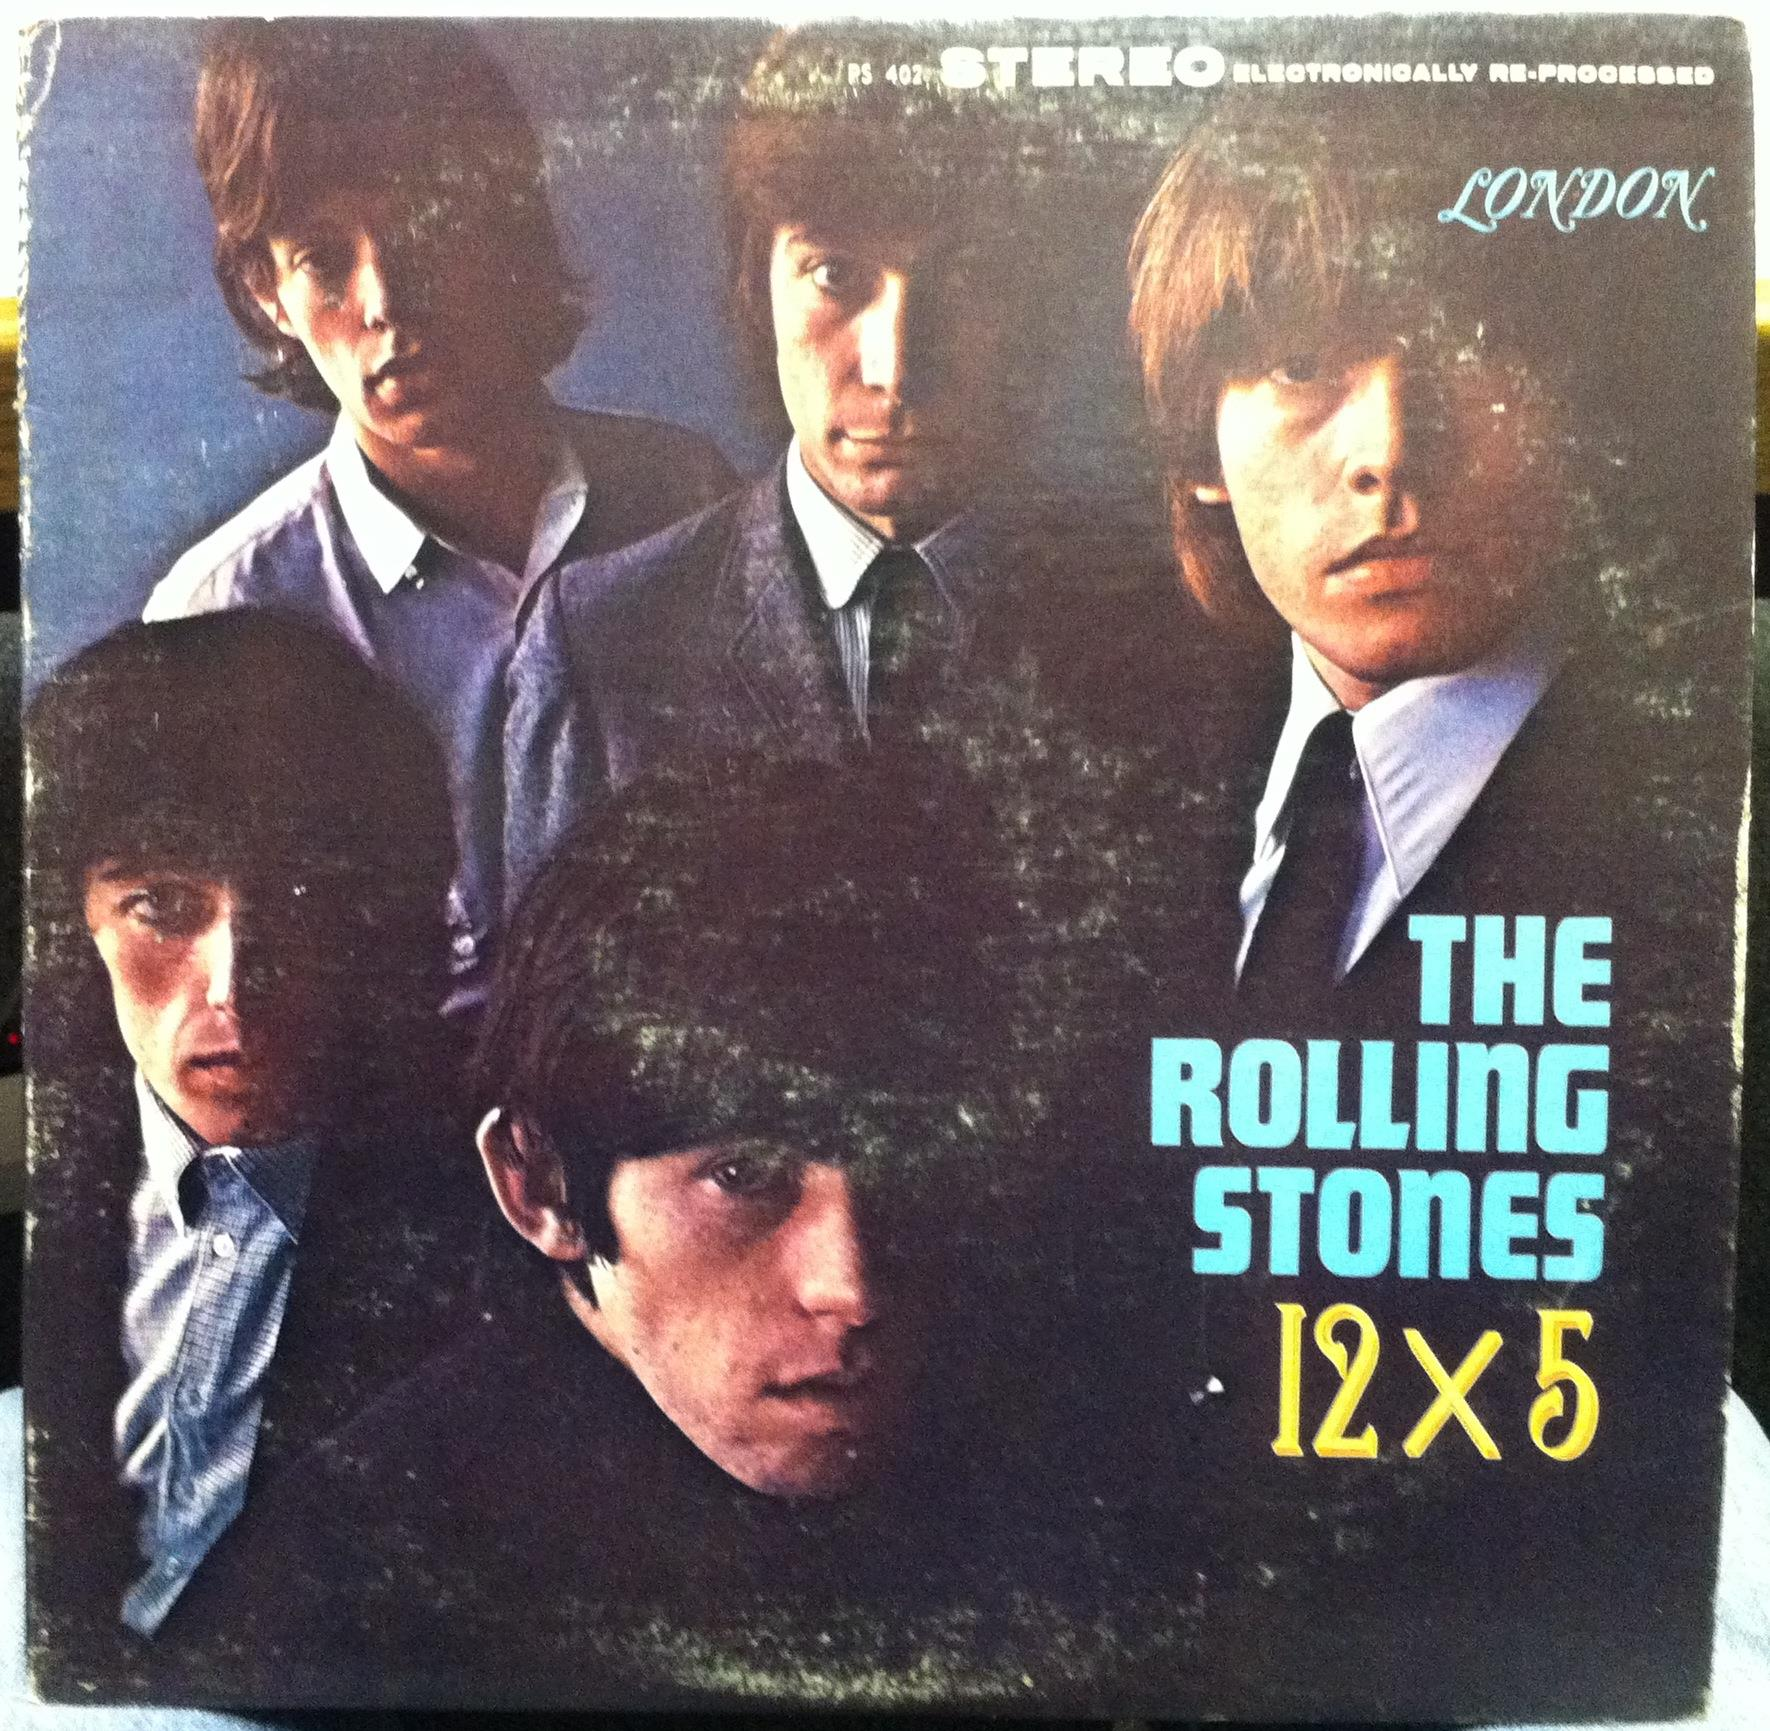 The Rolling Stones 12 X 5 Lp Vg Ps 402 Vinyl 1964 Stereo